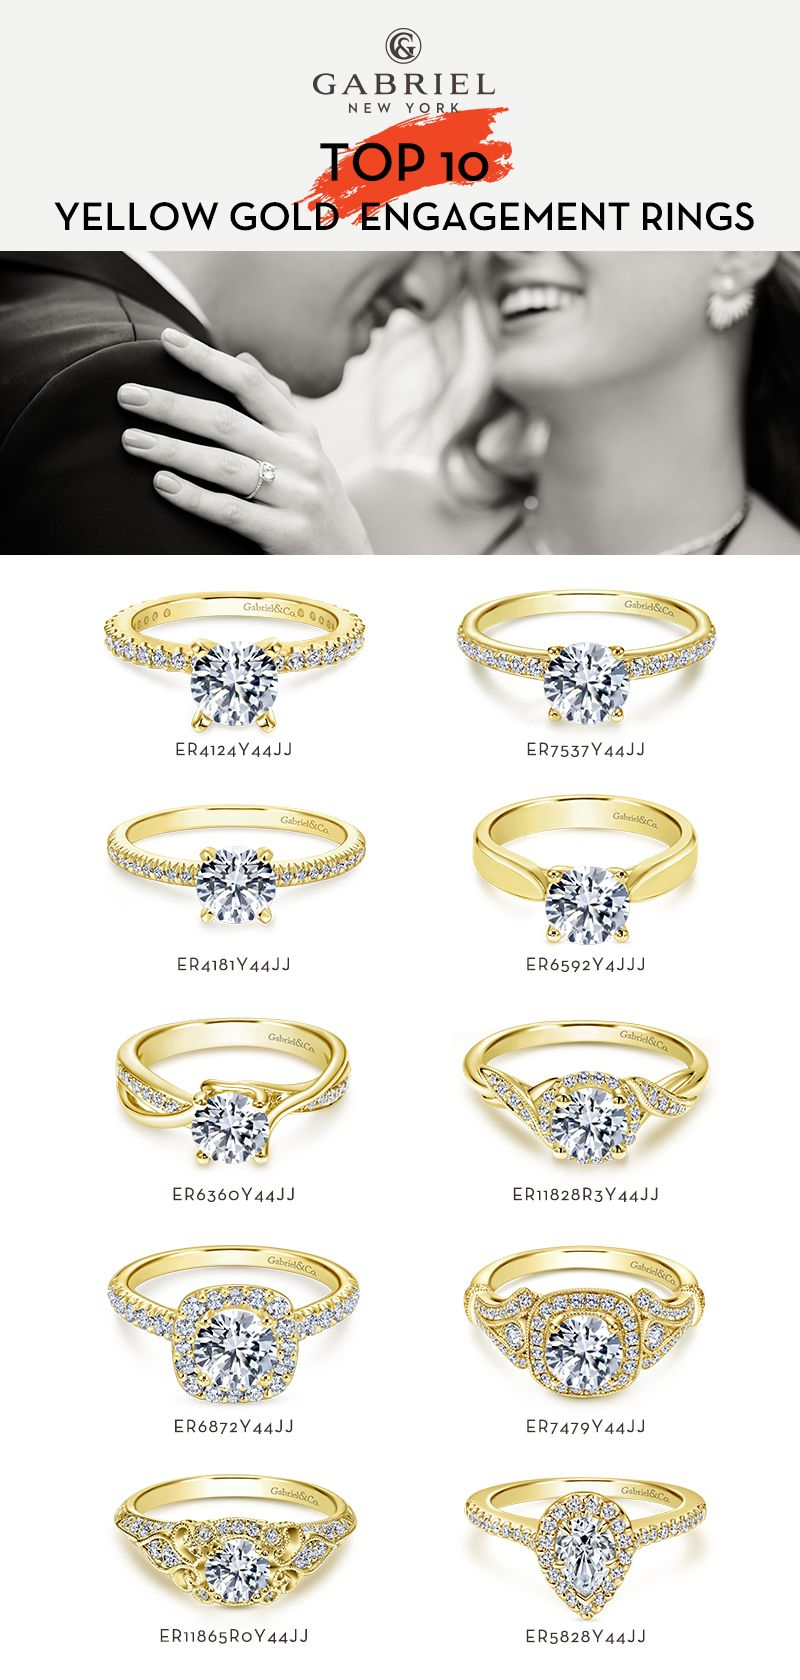 Yellow Gold Engagement Rings Yellow Gold Engagement Engagement Rings Yellow Gold Engagement Rings